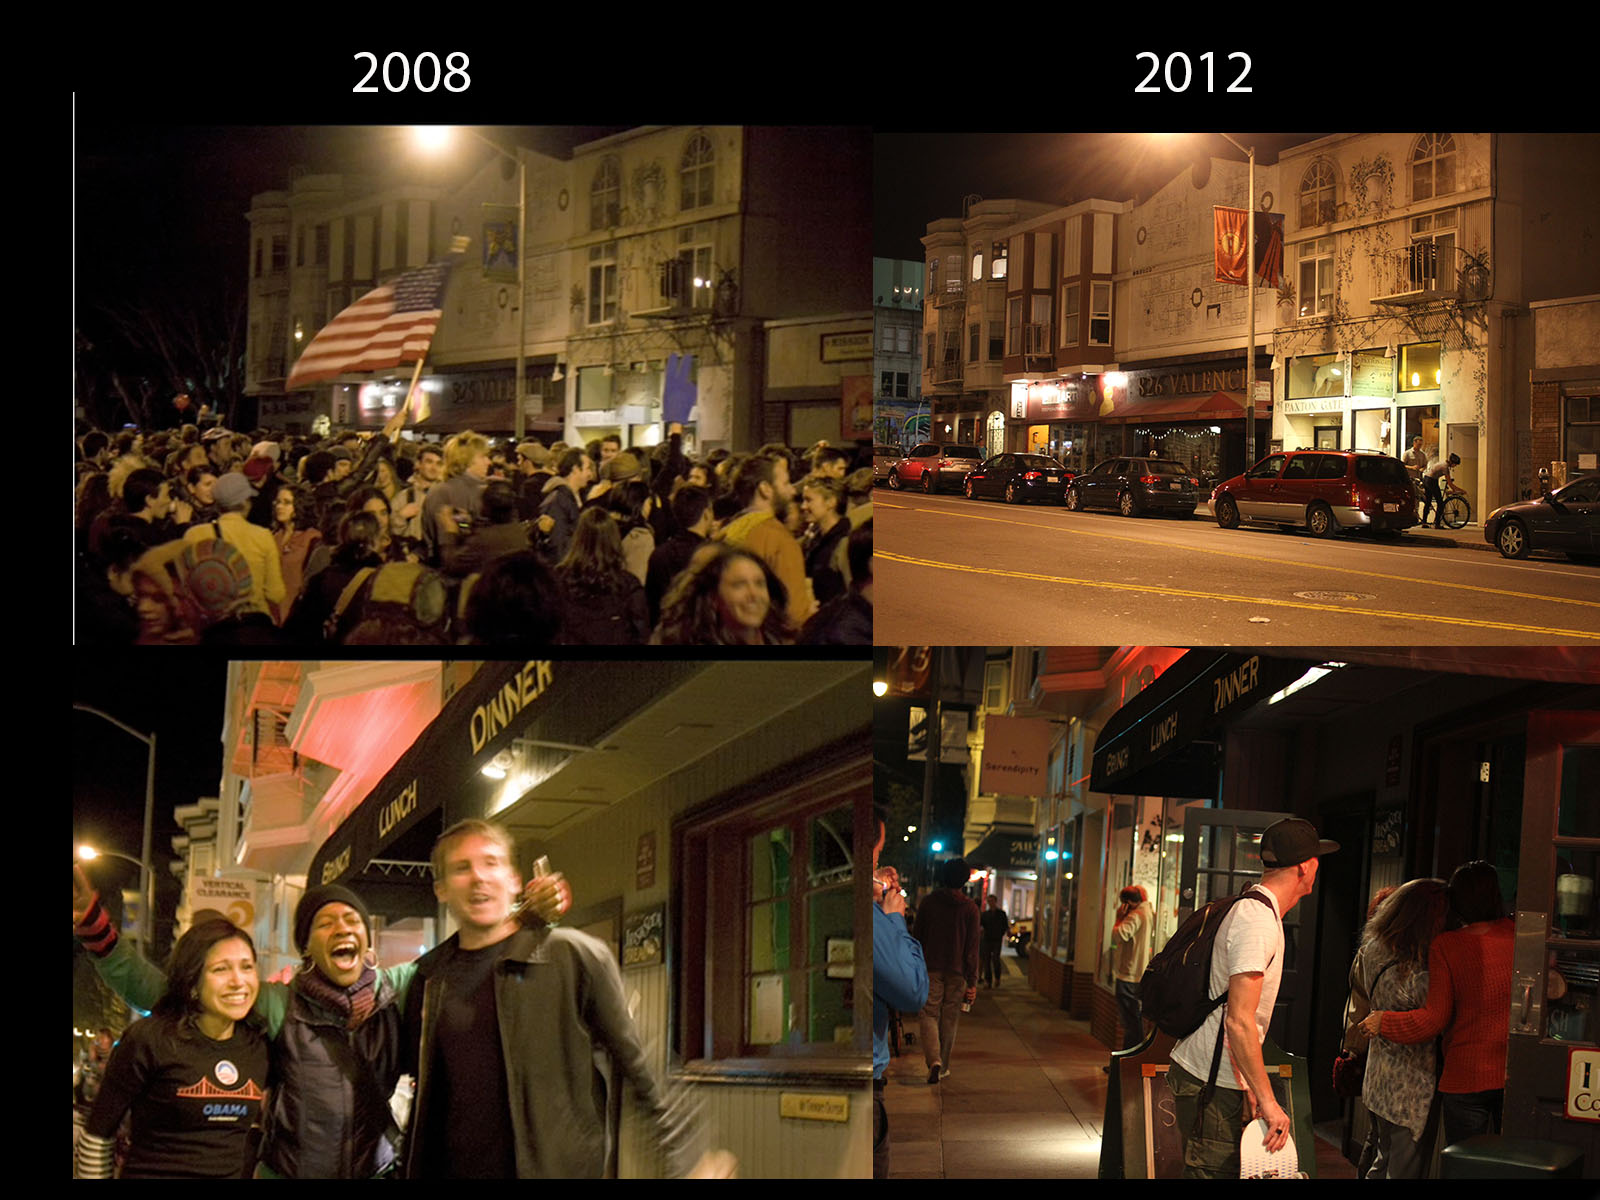 Then and Now: Valencia and 19th Sts. on Election Day, 2008 and 2012